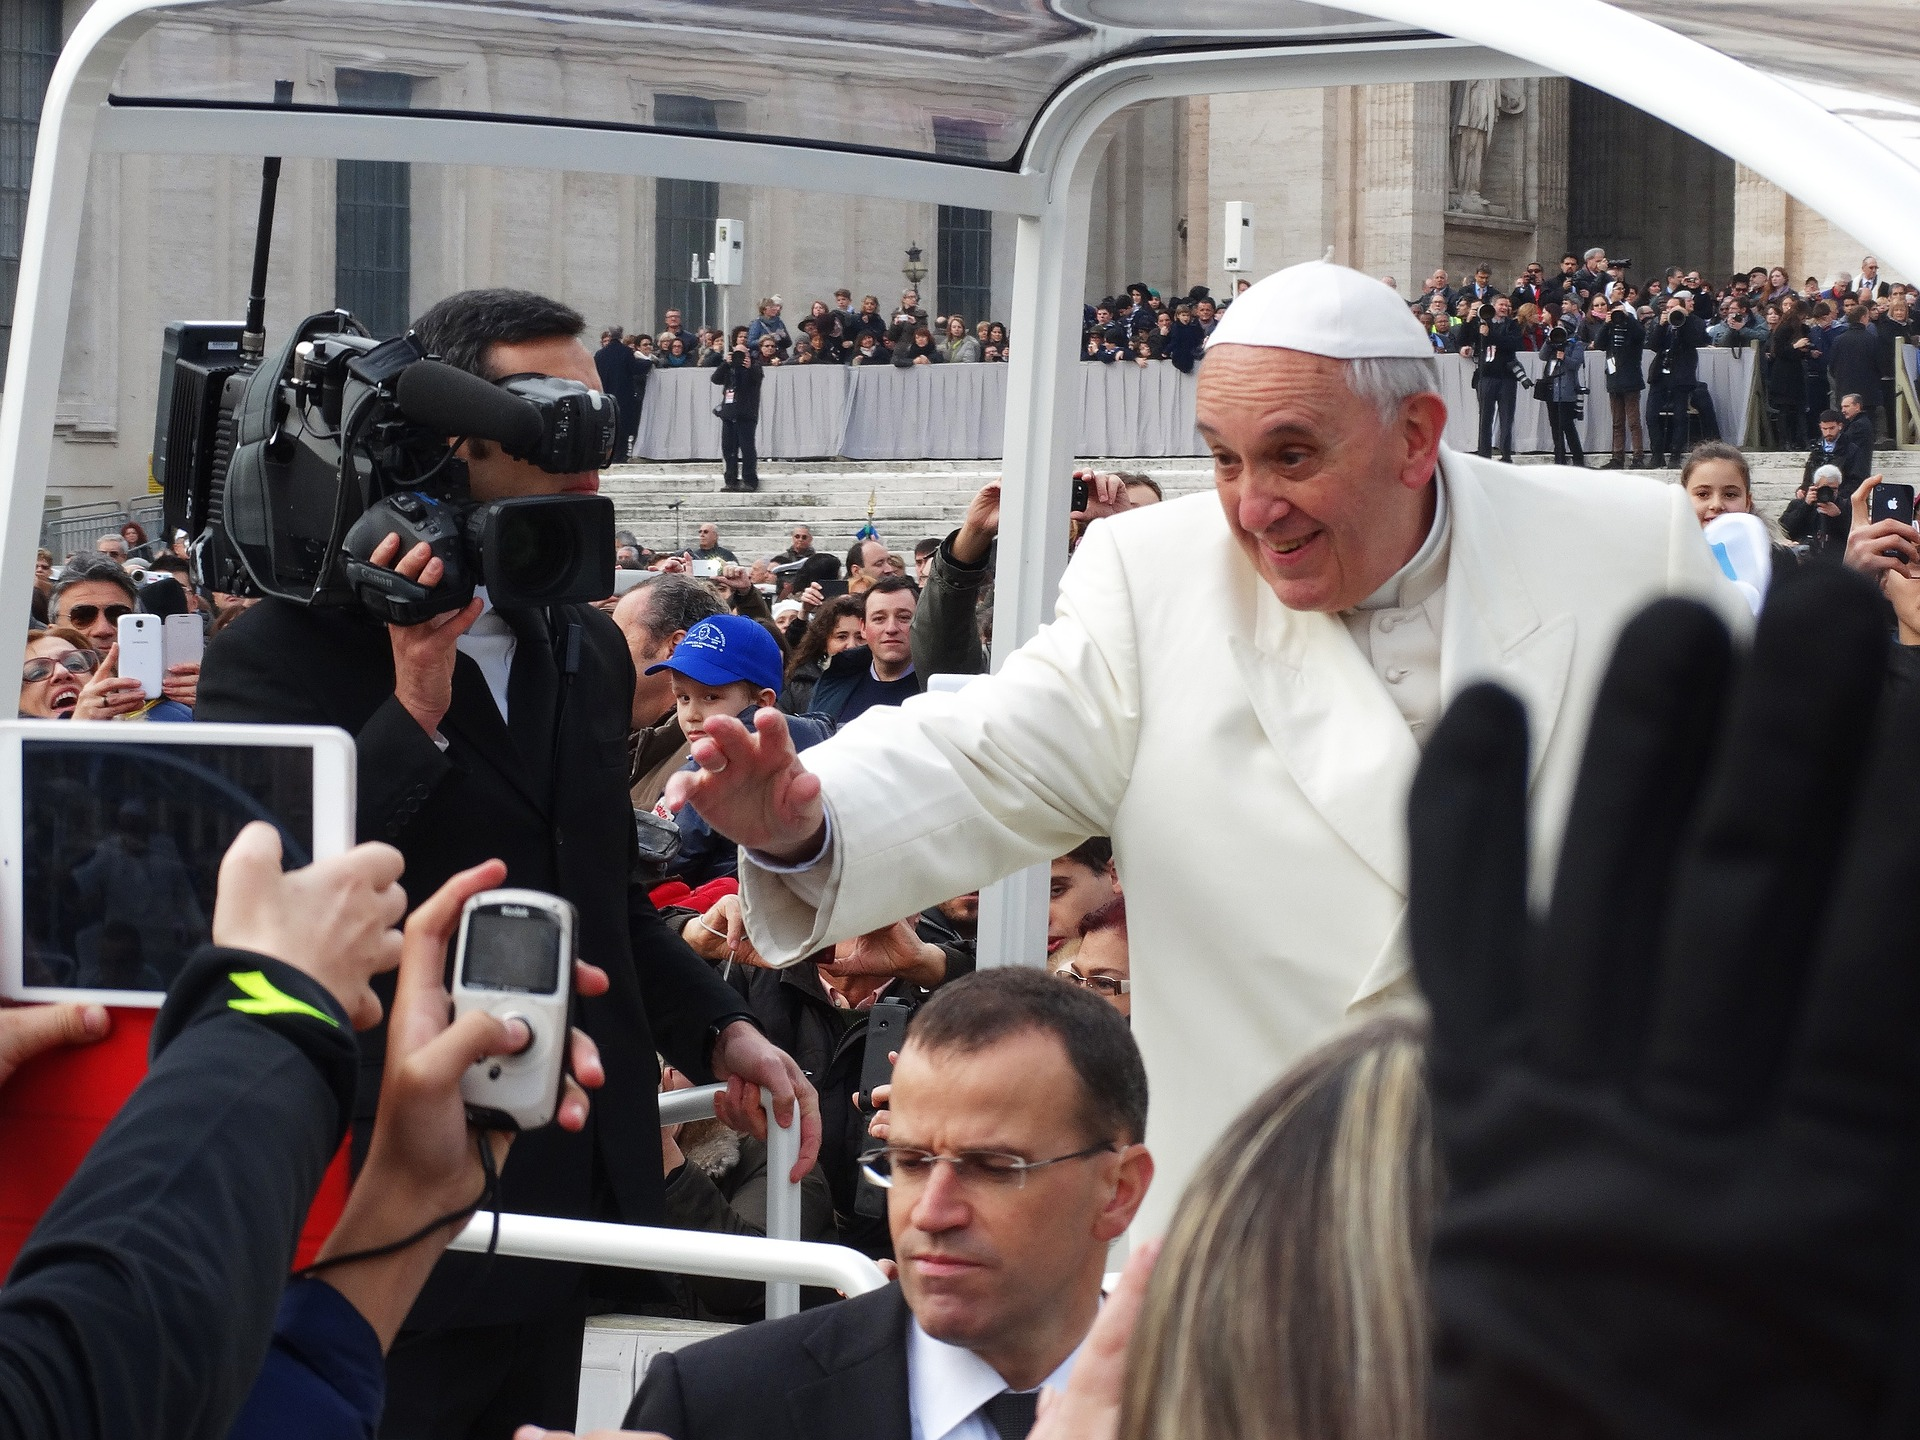 The pope at Easter in Rome 2020: a guide to Holy Week 2020 in Rome, including Maundy Thursday, Good Friday, Easter Saturday, Easter Sunday and Easter Monday.